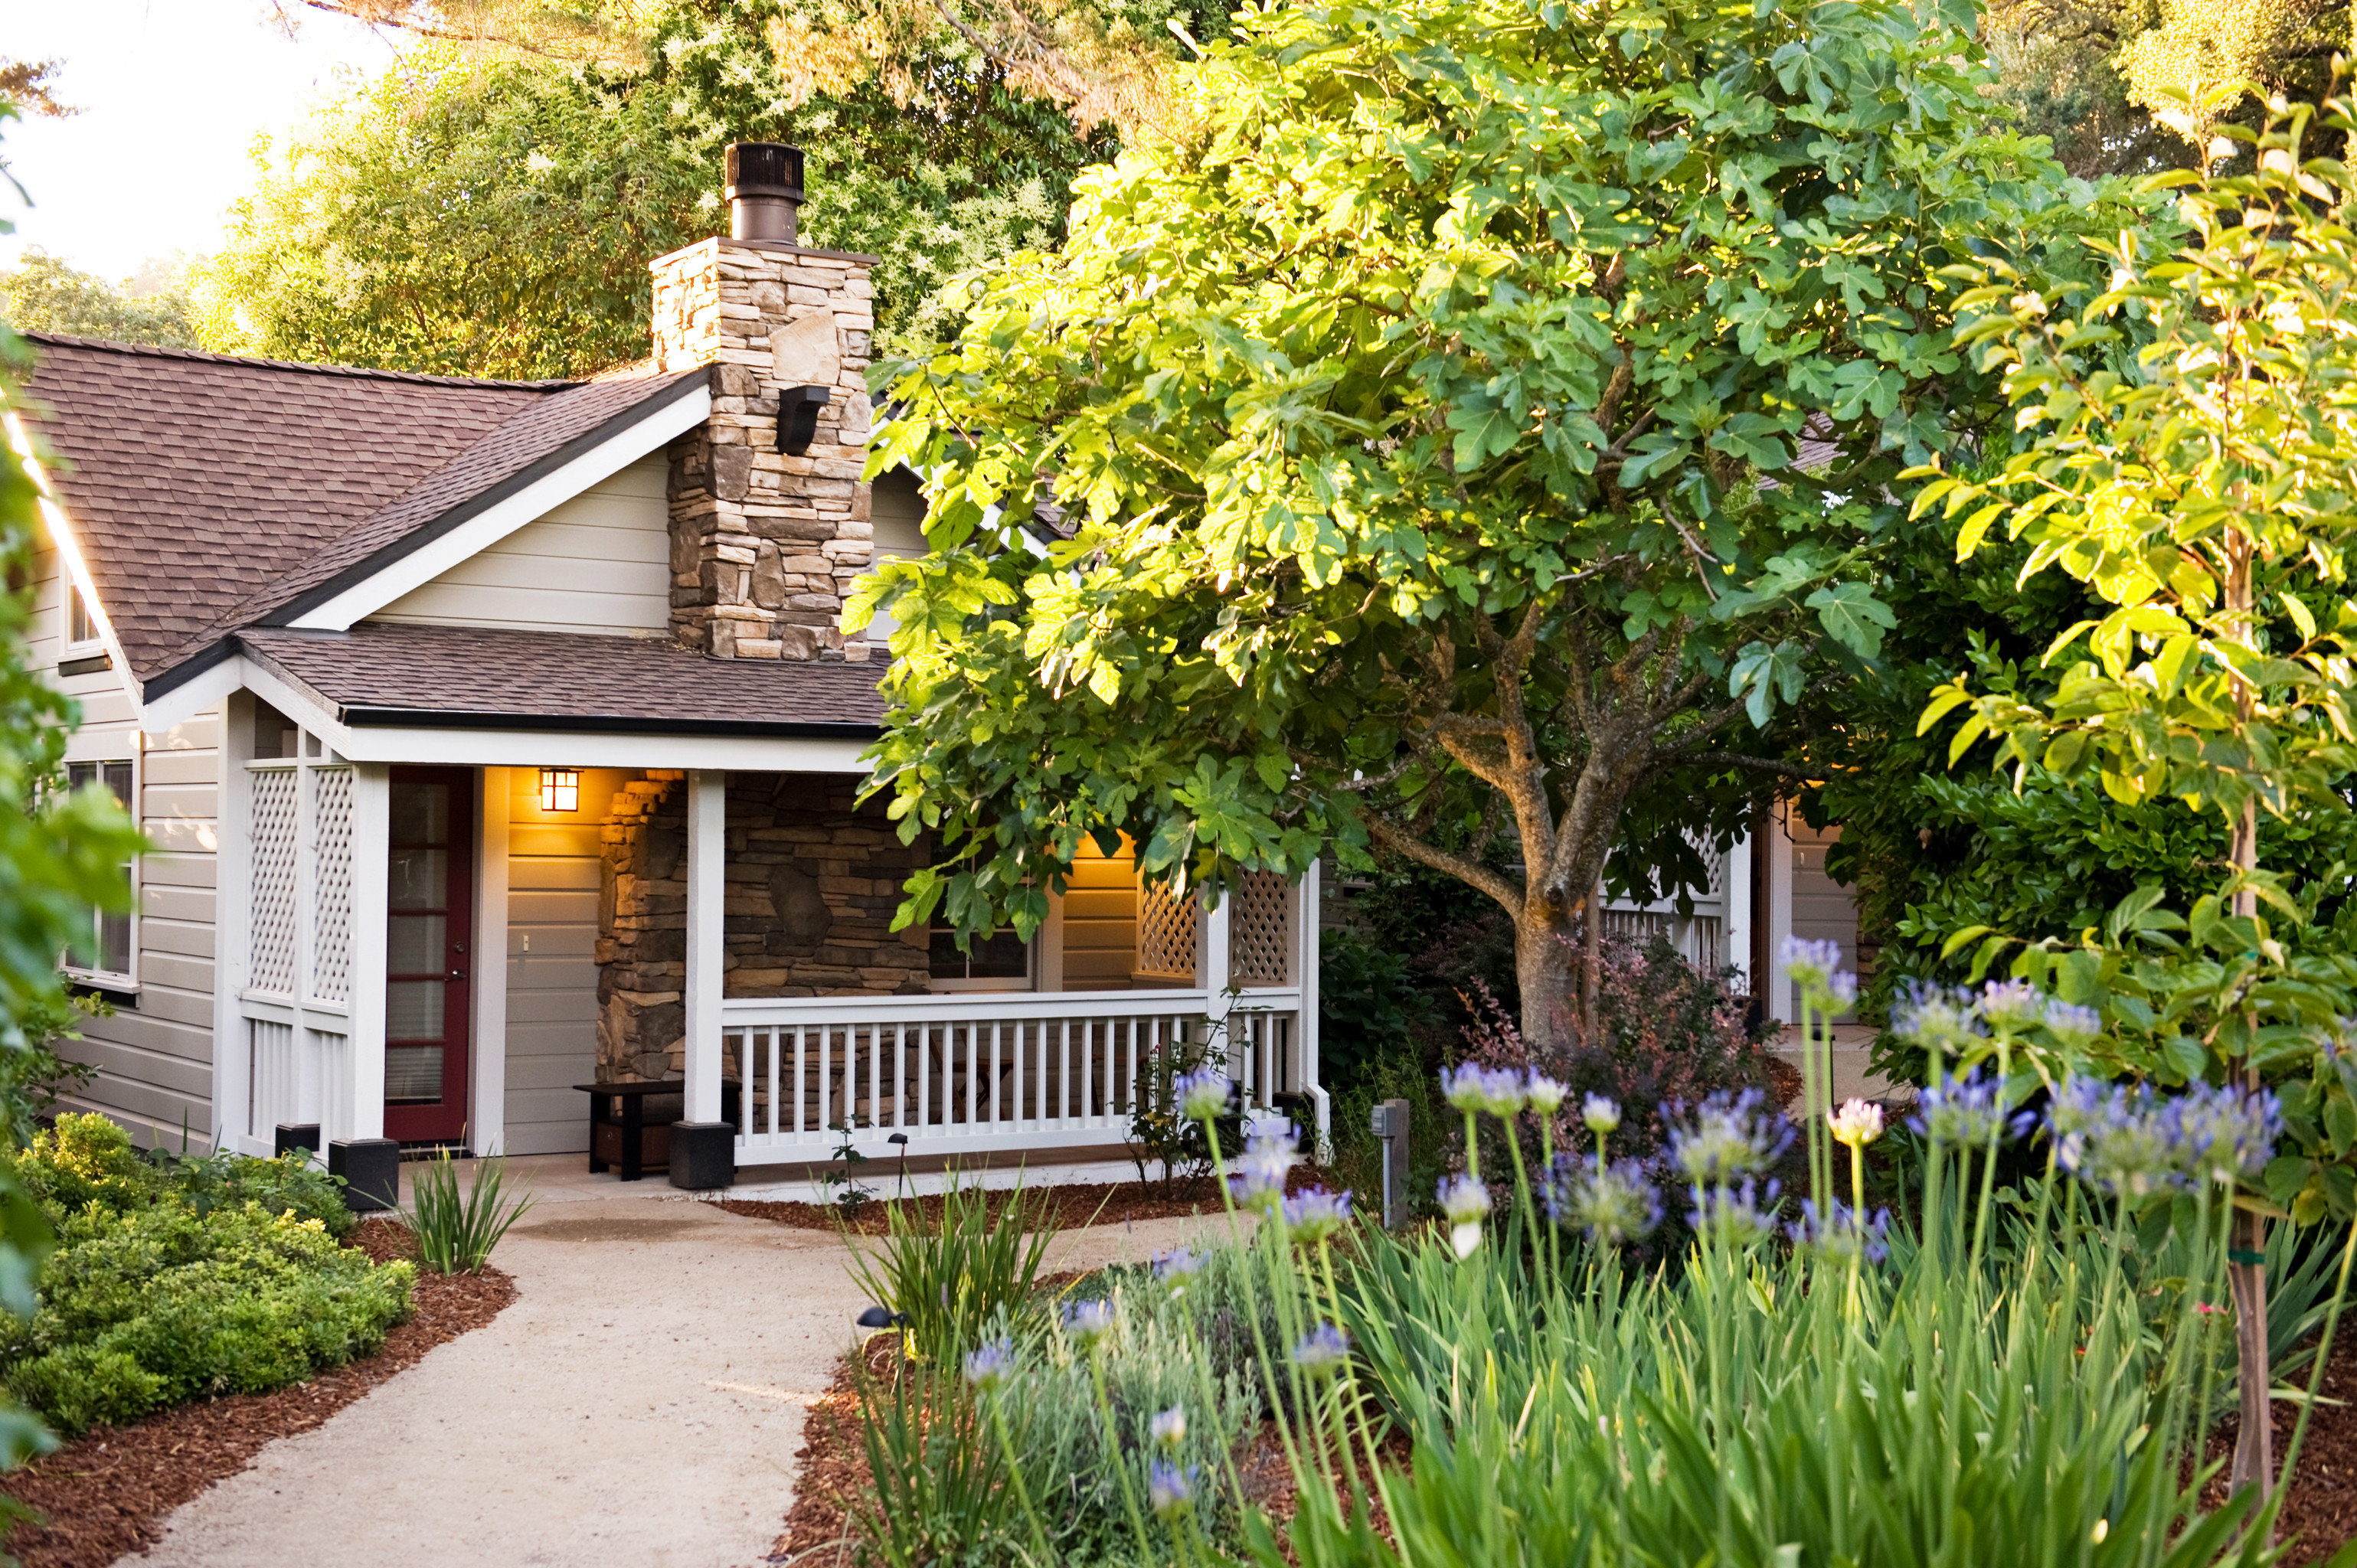 Architecture Buildings Grounds tree grass house property Garden yard flower home cottage residential area plant backyard lawn shrub bushes surrounded